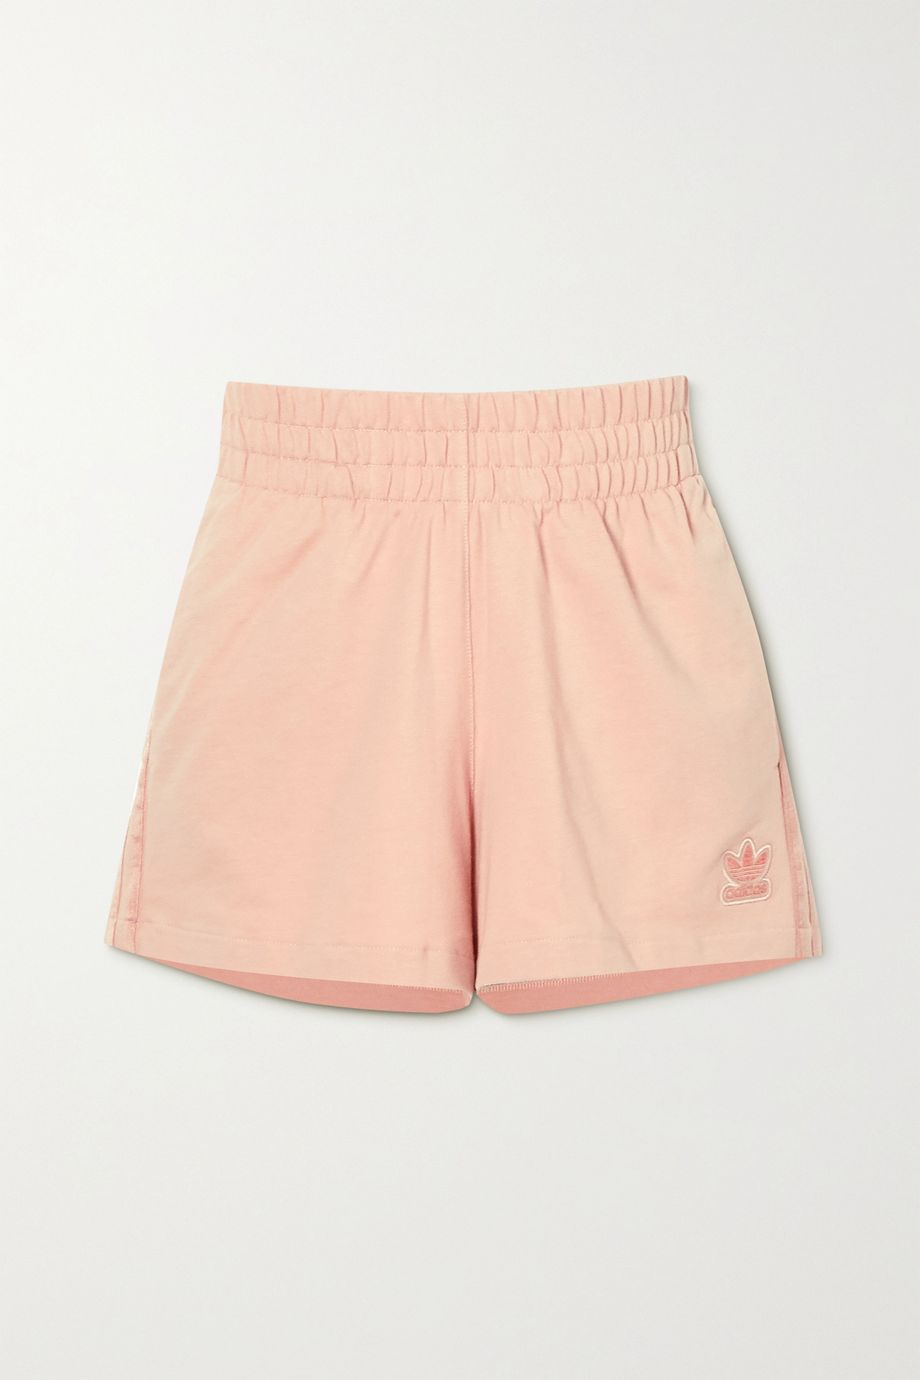 adidas Originals Metallic-striped French cotton-terry shorts